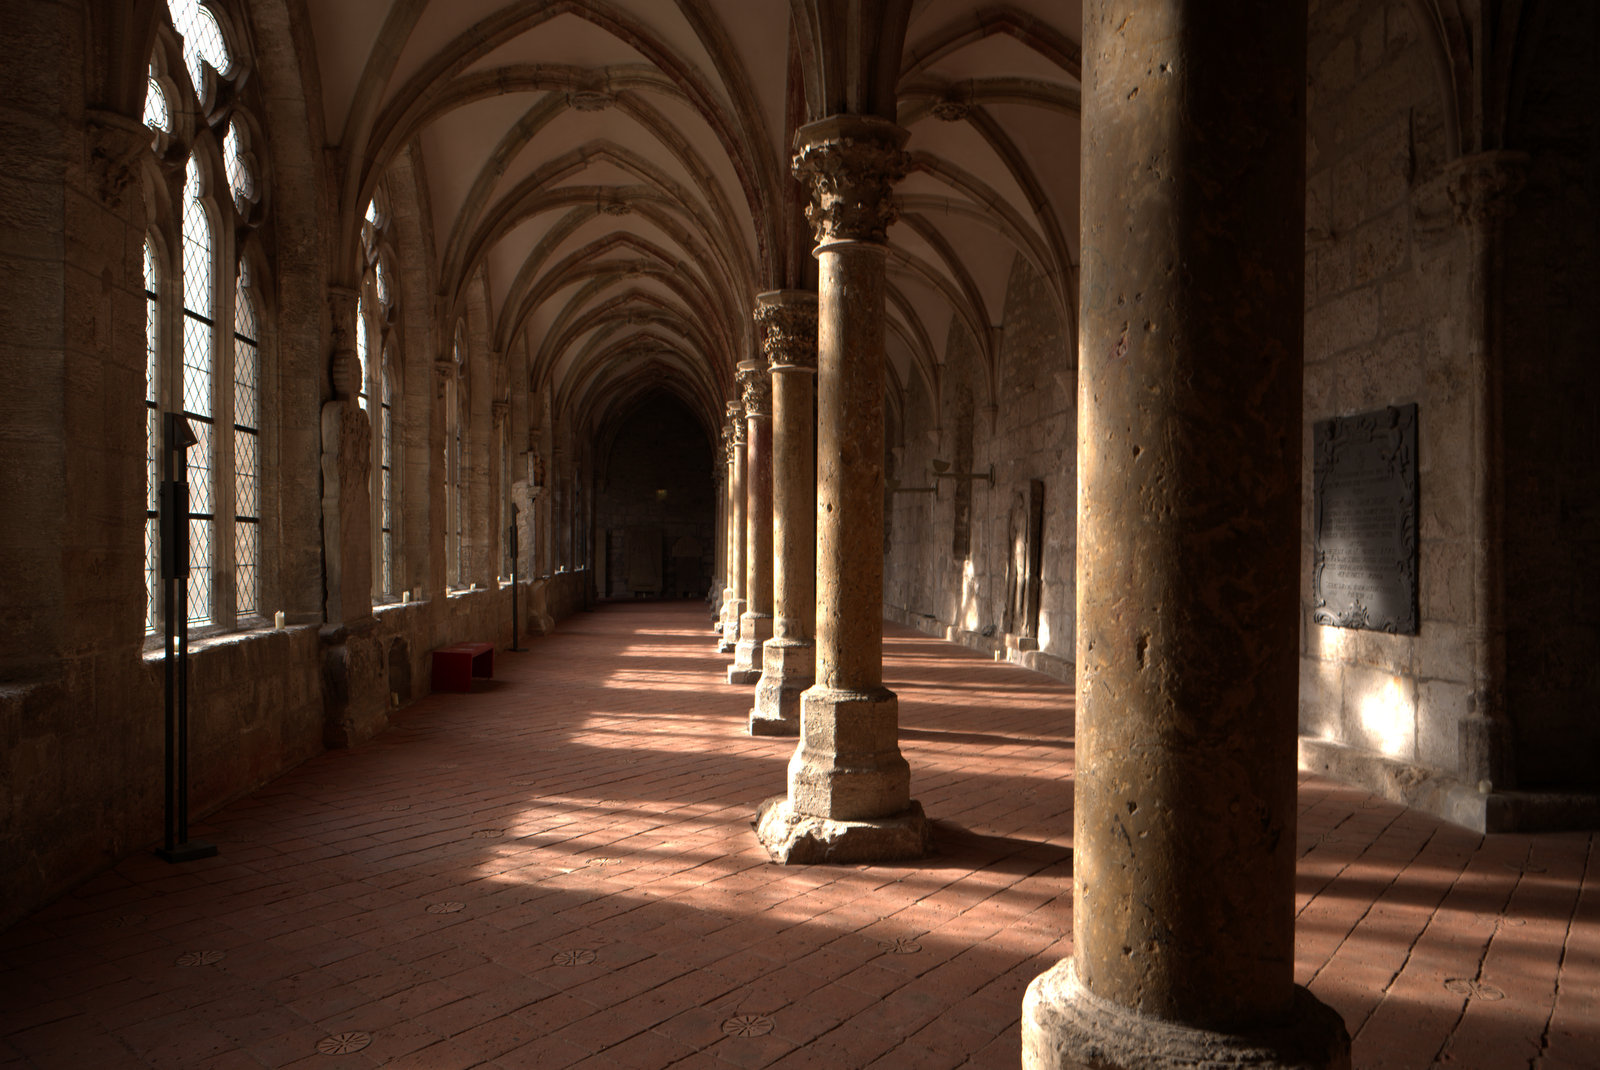 Kloster Walkenried, Germany